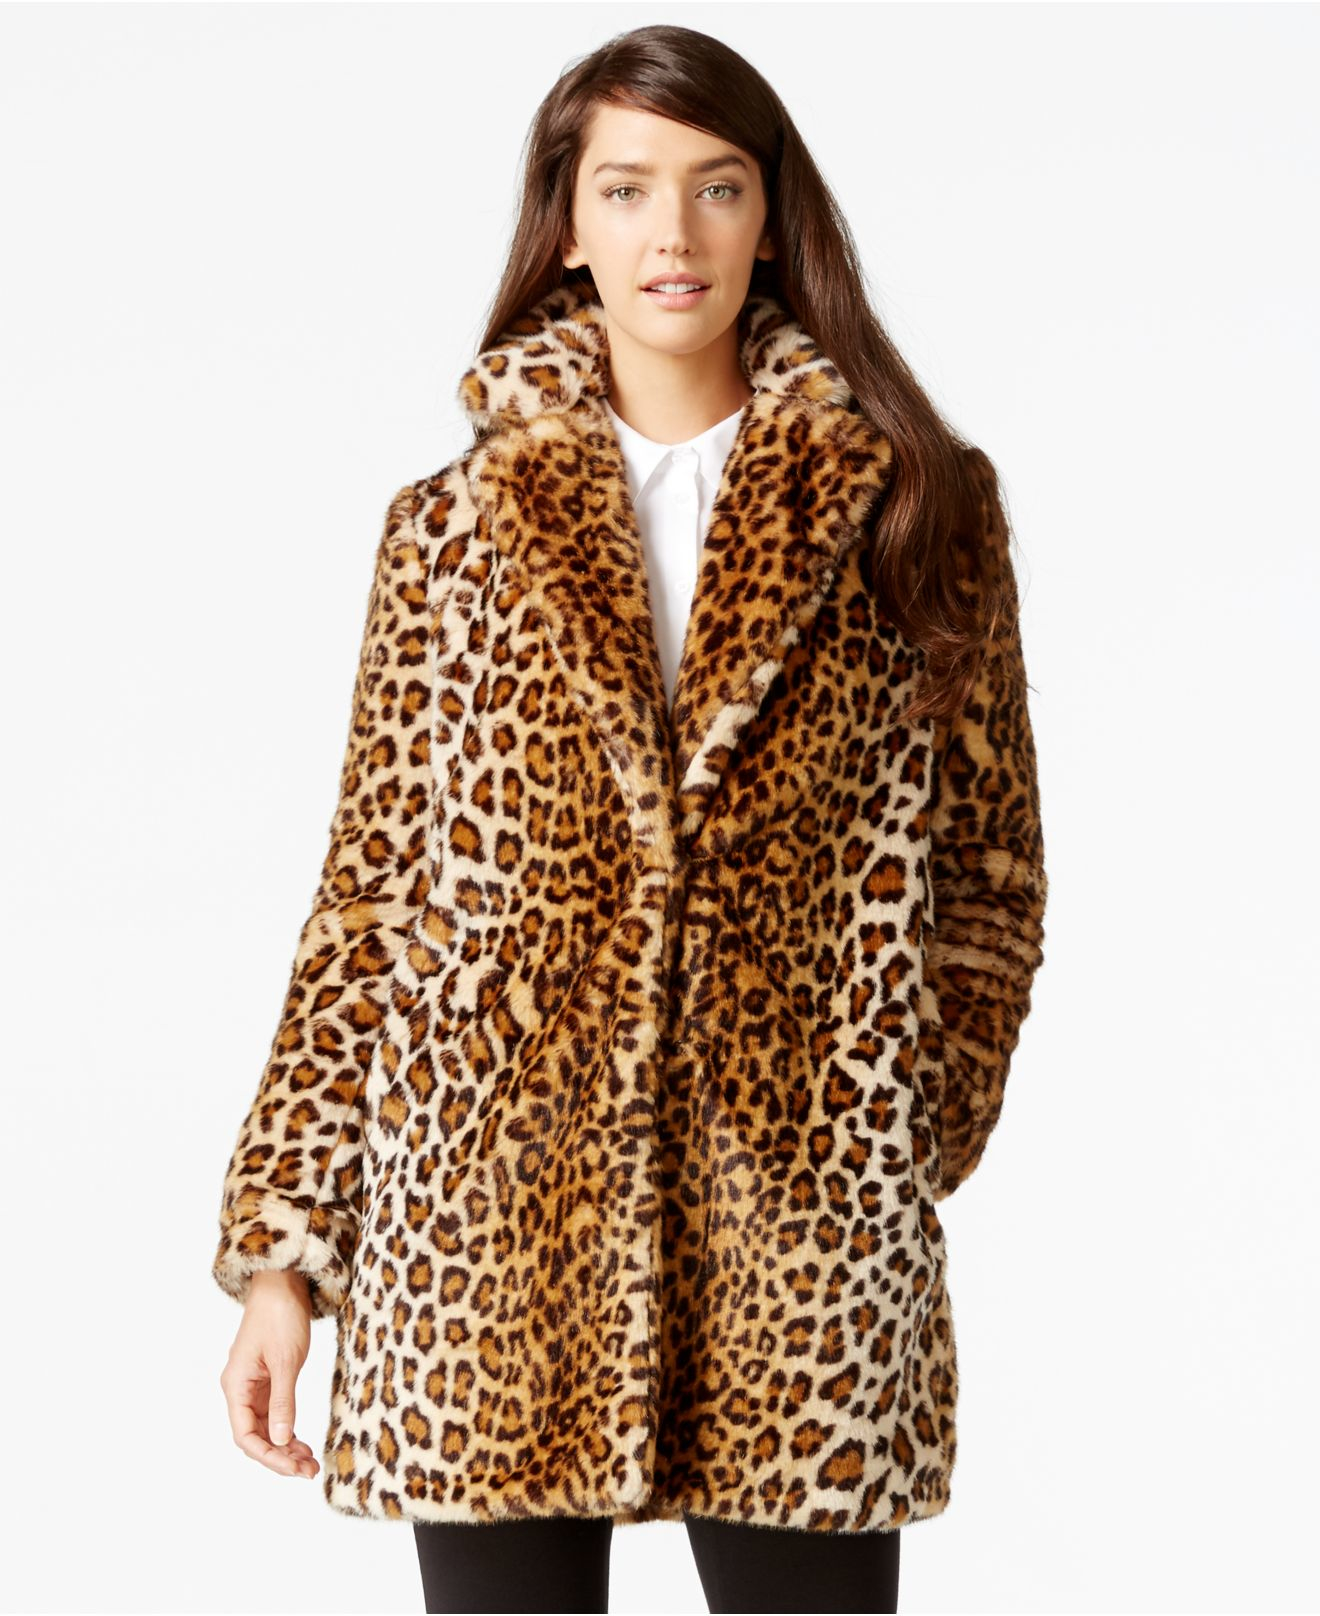 Share Kate Faux Fur Leopard Coat in Brown on Pinterest (opens in a new window) Share Kate Faux Fur Leopard Coat in Brown on Google (opens in a new window) Kate Faux Fur Leopard Coat Free People Free People $ Or 4 installments of $ by afterpay.